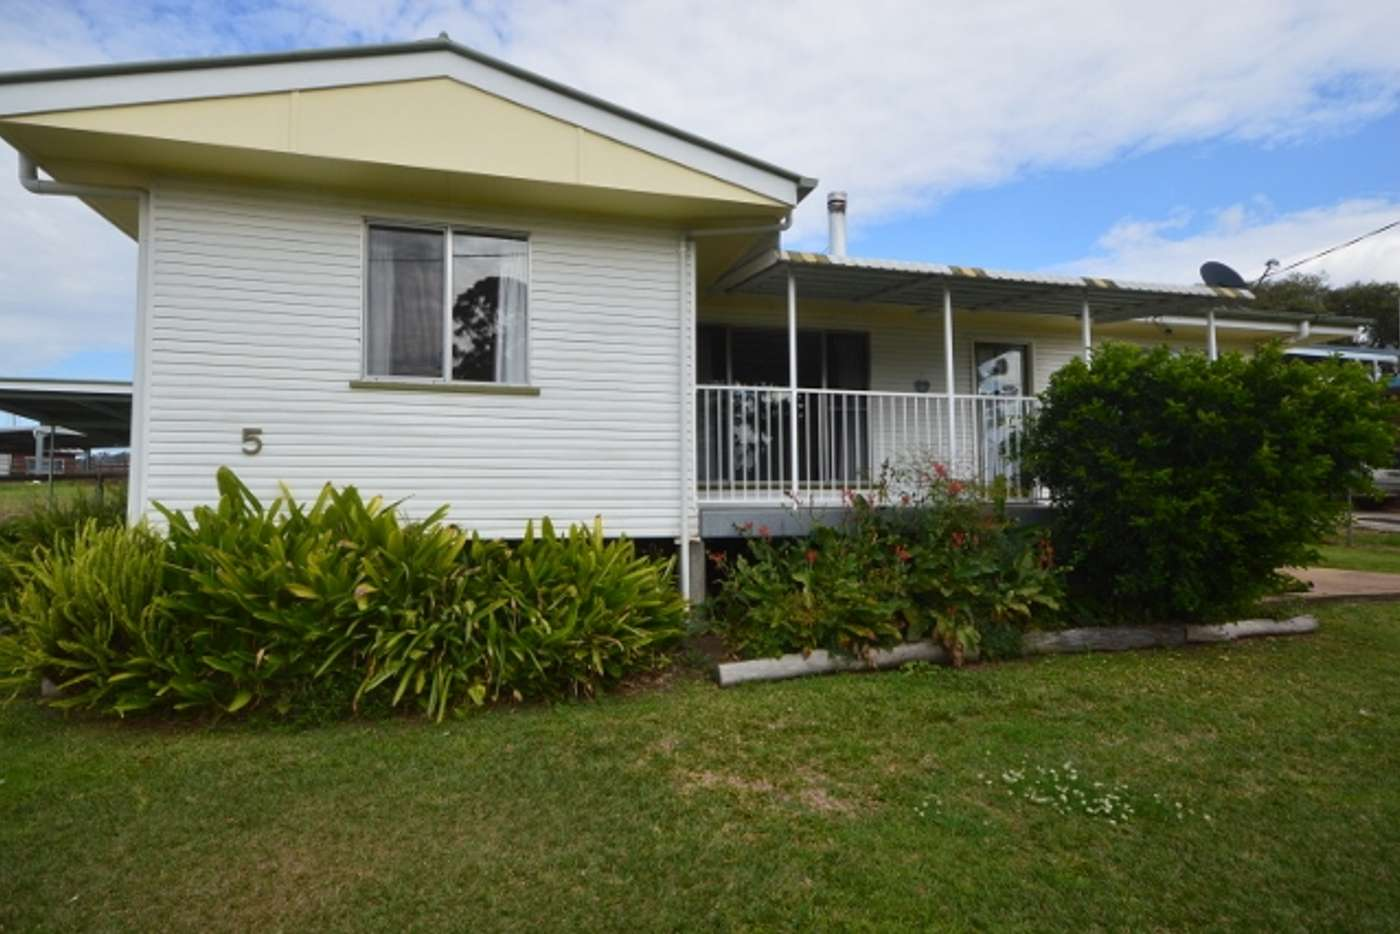 Main view of Homely house listing, 5 Brooloo Road, Kenilworth QLD 4574